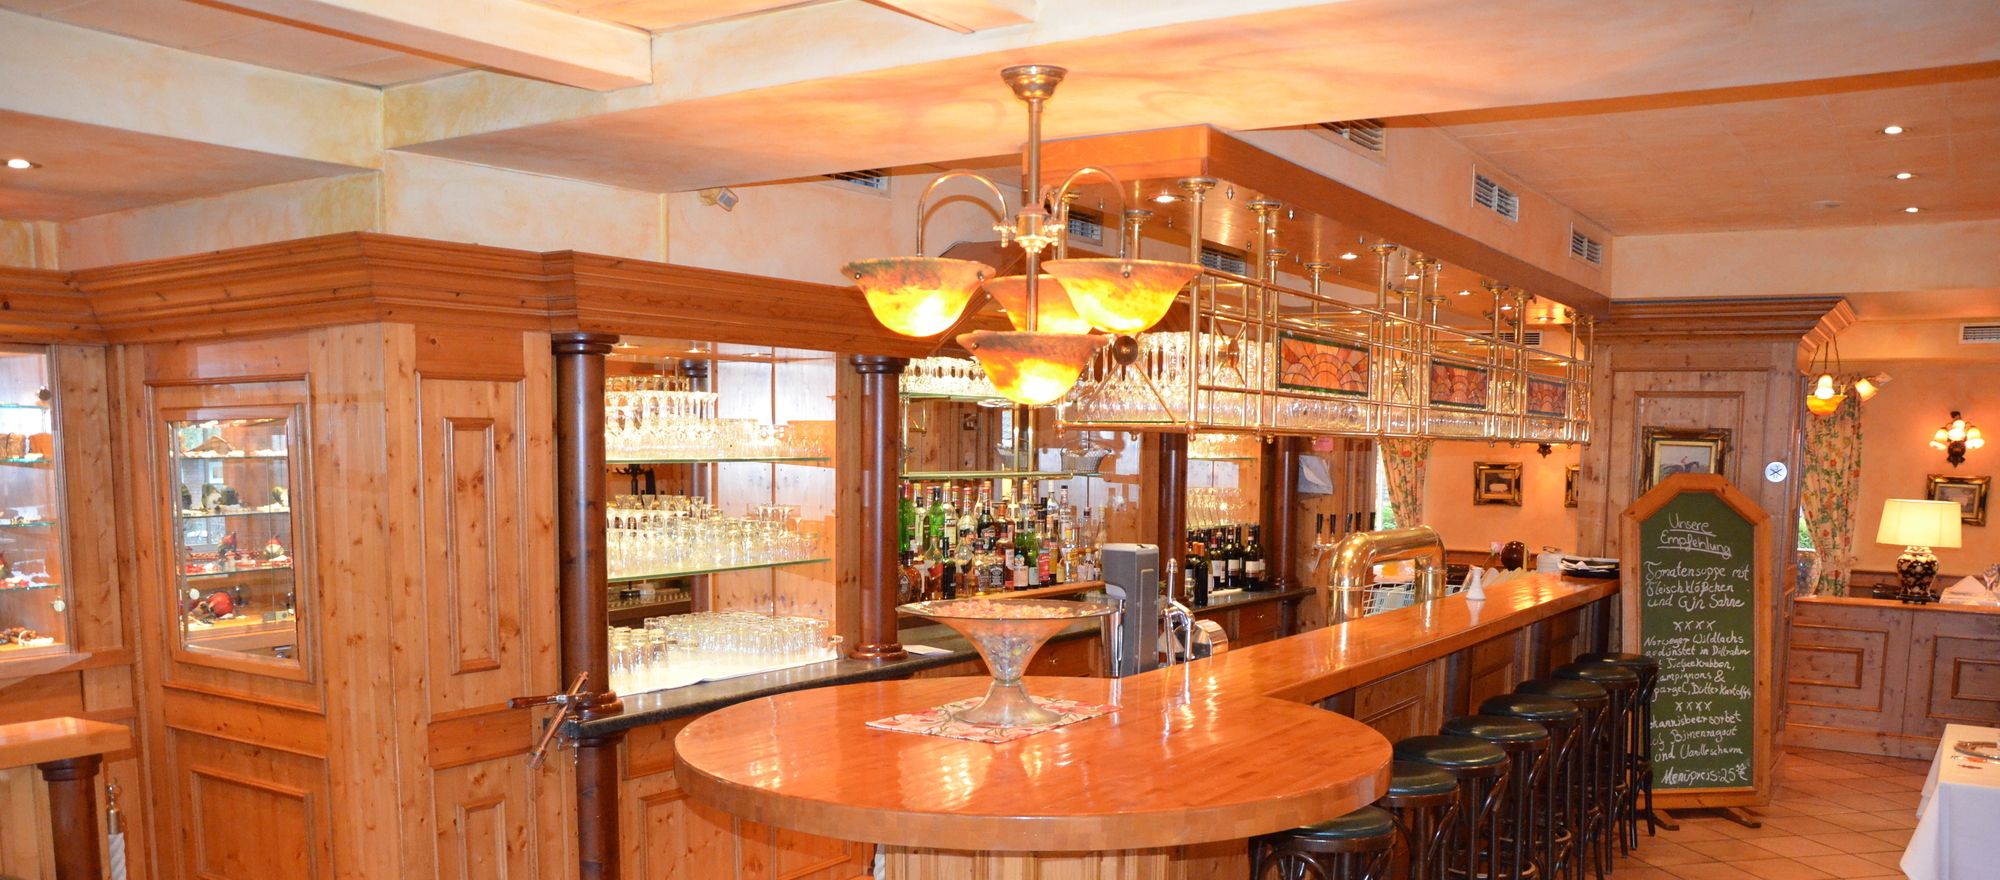 Enjoy the evening at the bar of the Ringhotel Kloevensteen in Hamburg-Schenefeld